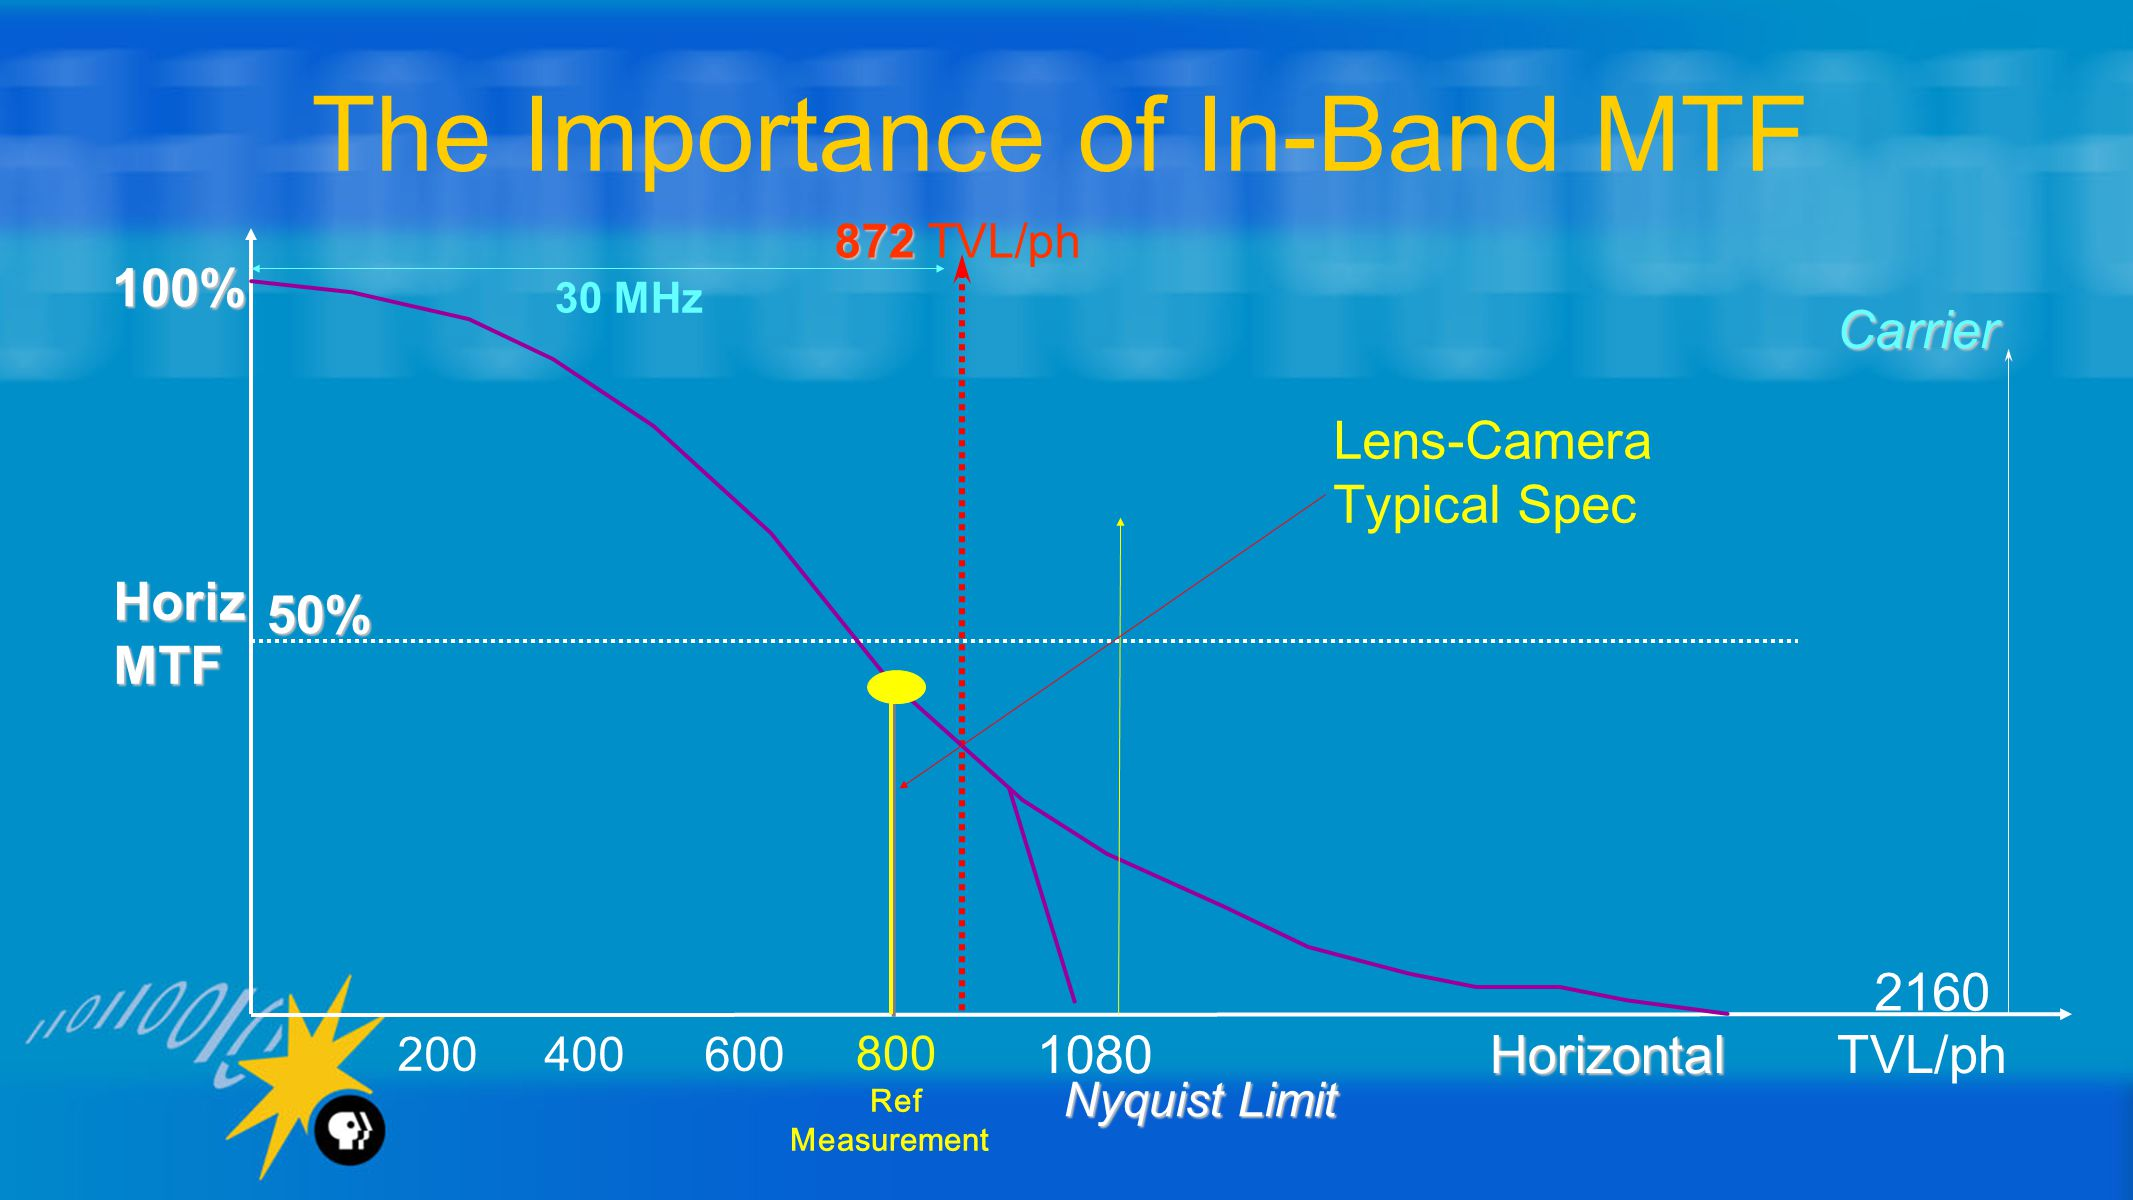 HorizMTF 1080TVL/phHorizontal Carrier Nyquist Limit Nyquist Limit 50% 872 872 TVL/ph 100% 800 Ref Measurement 200 400 600 The Importance of In-Band MTF Lens-Camera Typical Spec 30 MHz 2160